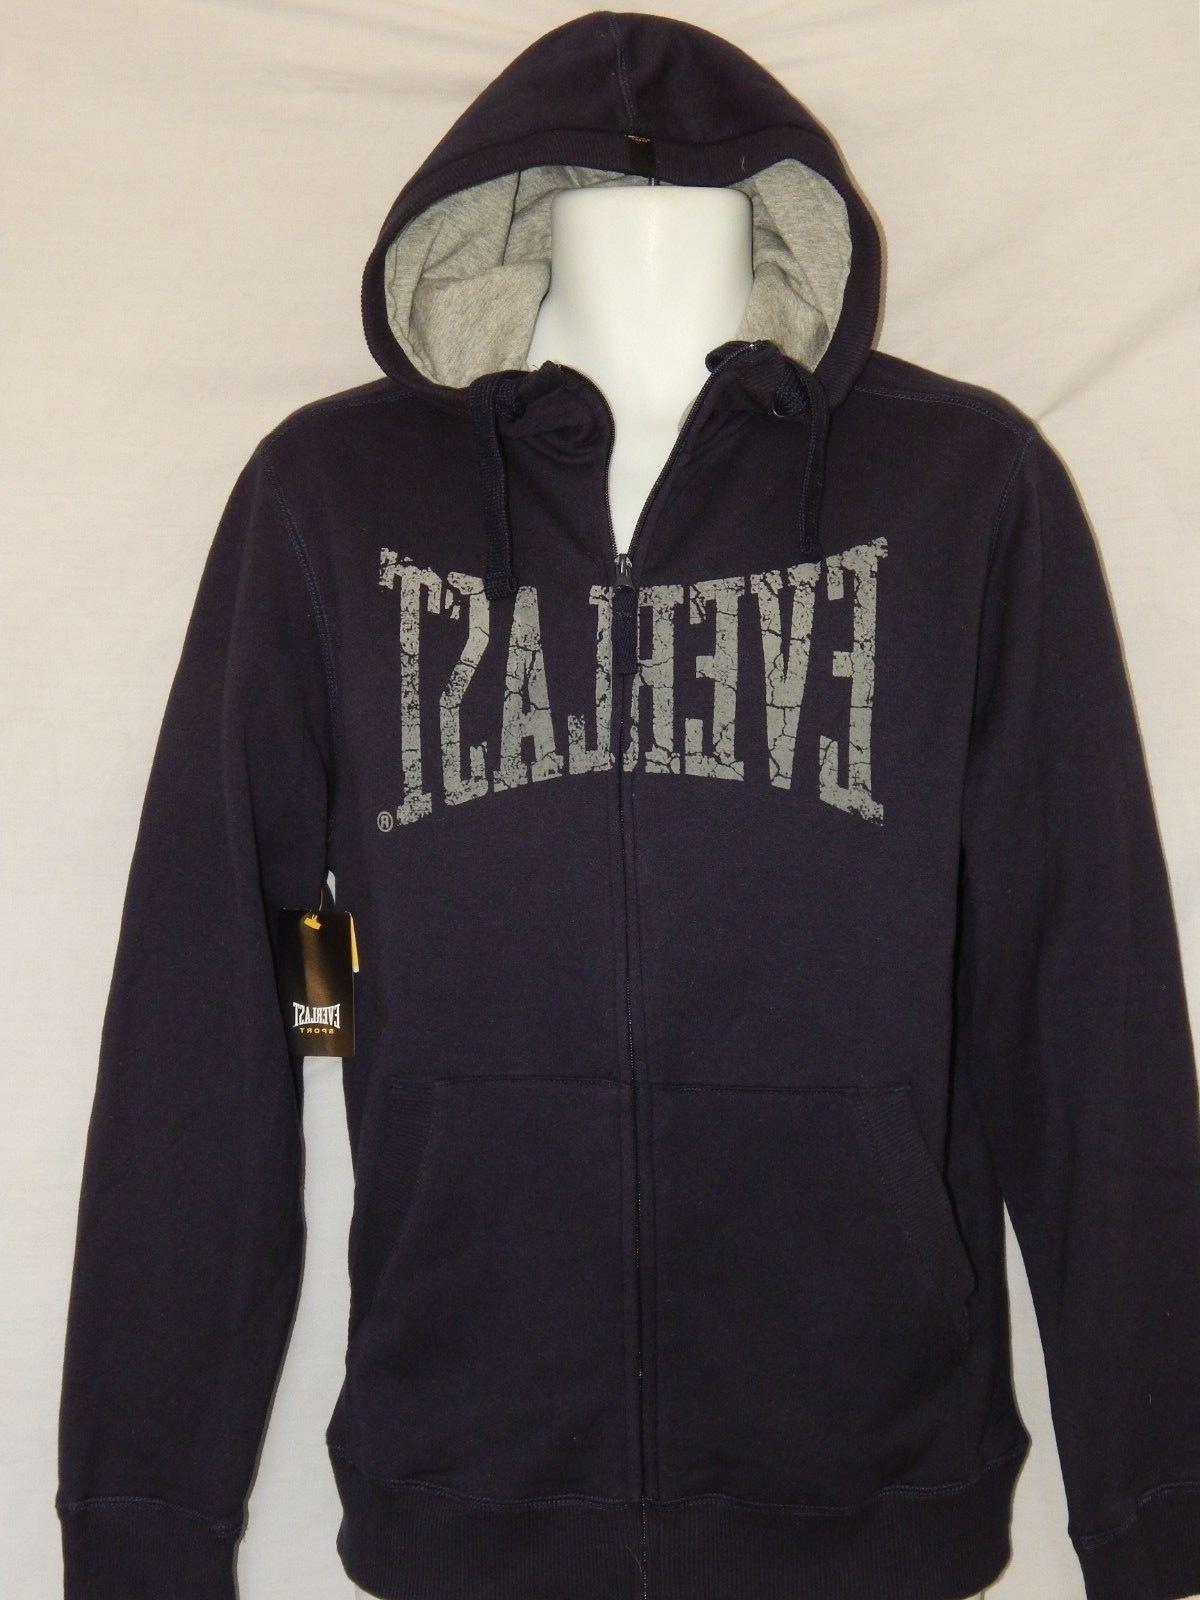 NEW Everlast Hoodie Shirt Sweatshirt Zip Up Vintage MMA Jack